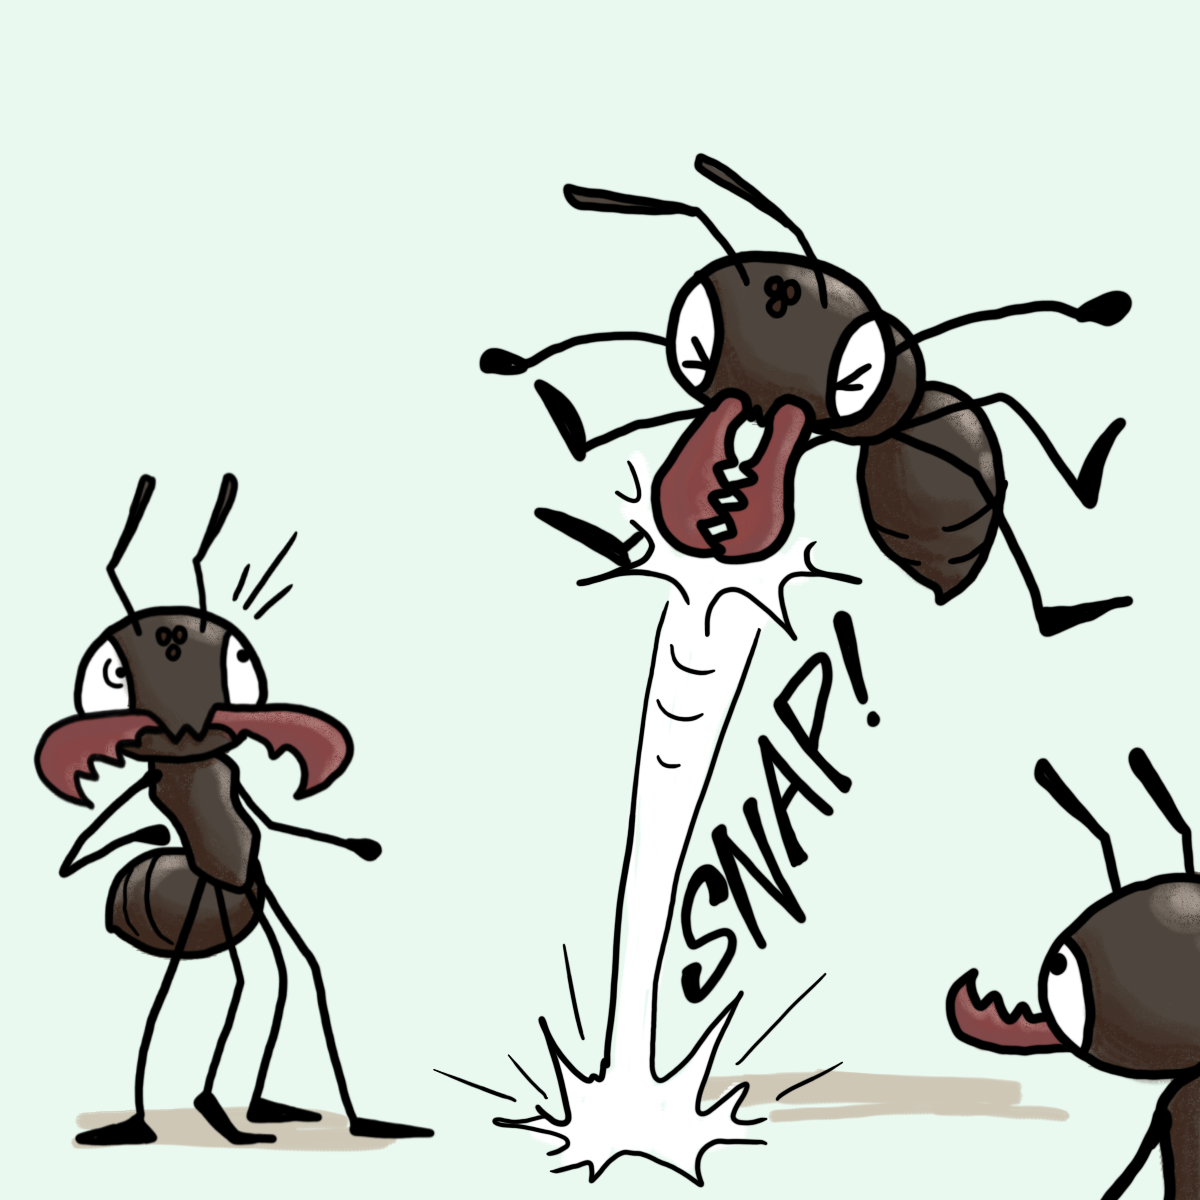 Ant clipart with mandible jpg black and white library The Draw Something Daily Initiative — March-ing Ants: Trap-jaw ants ... jpg black and white library